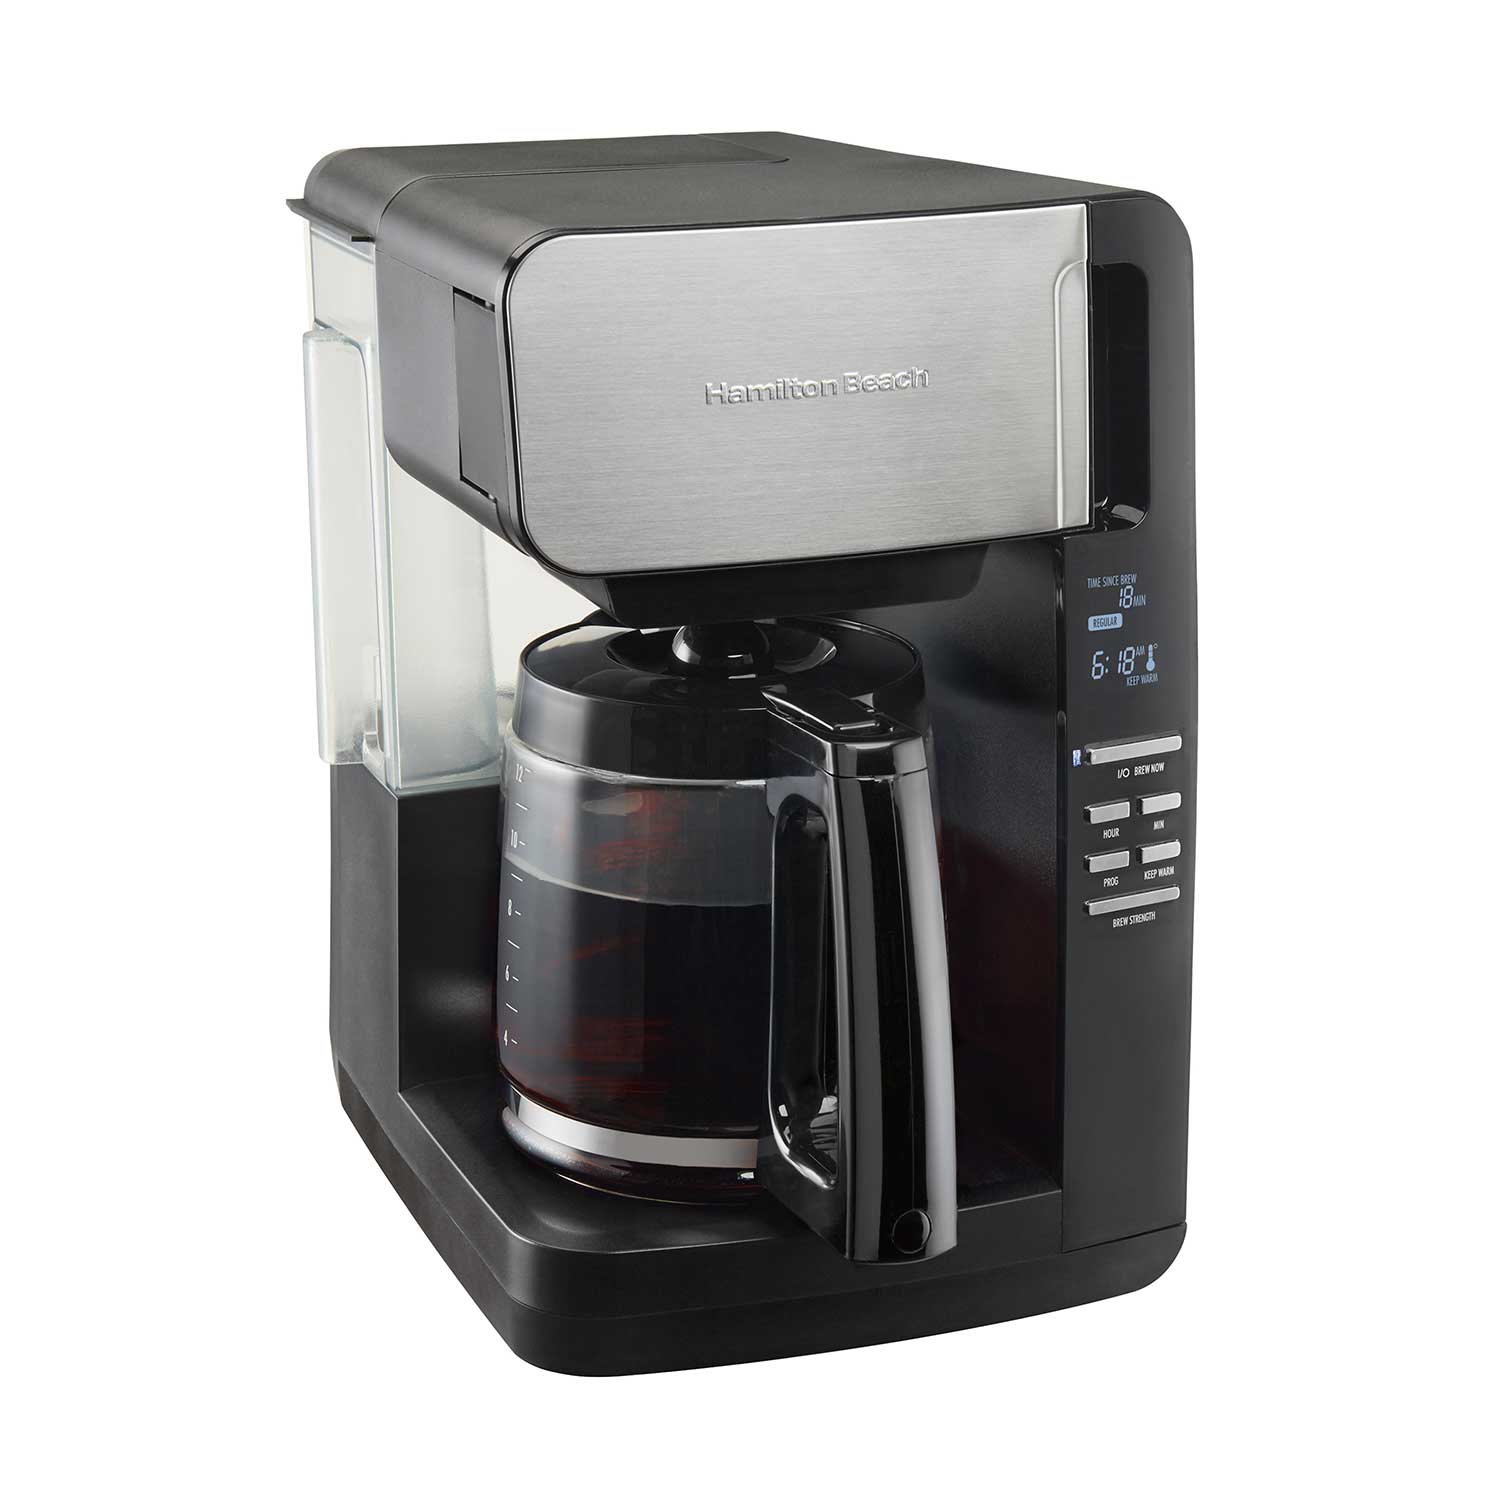 12 Cup Programmable Ultra Coffee Maker Black & Stainless (46203)